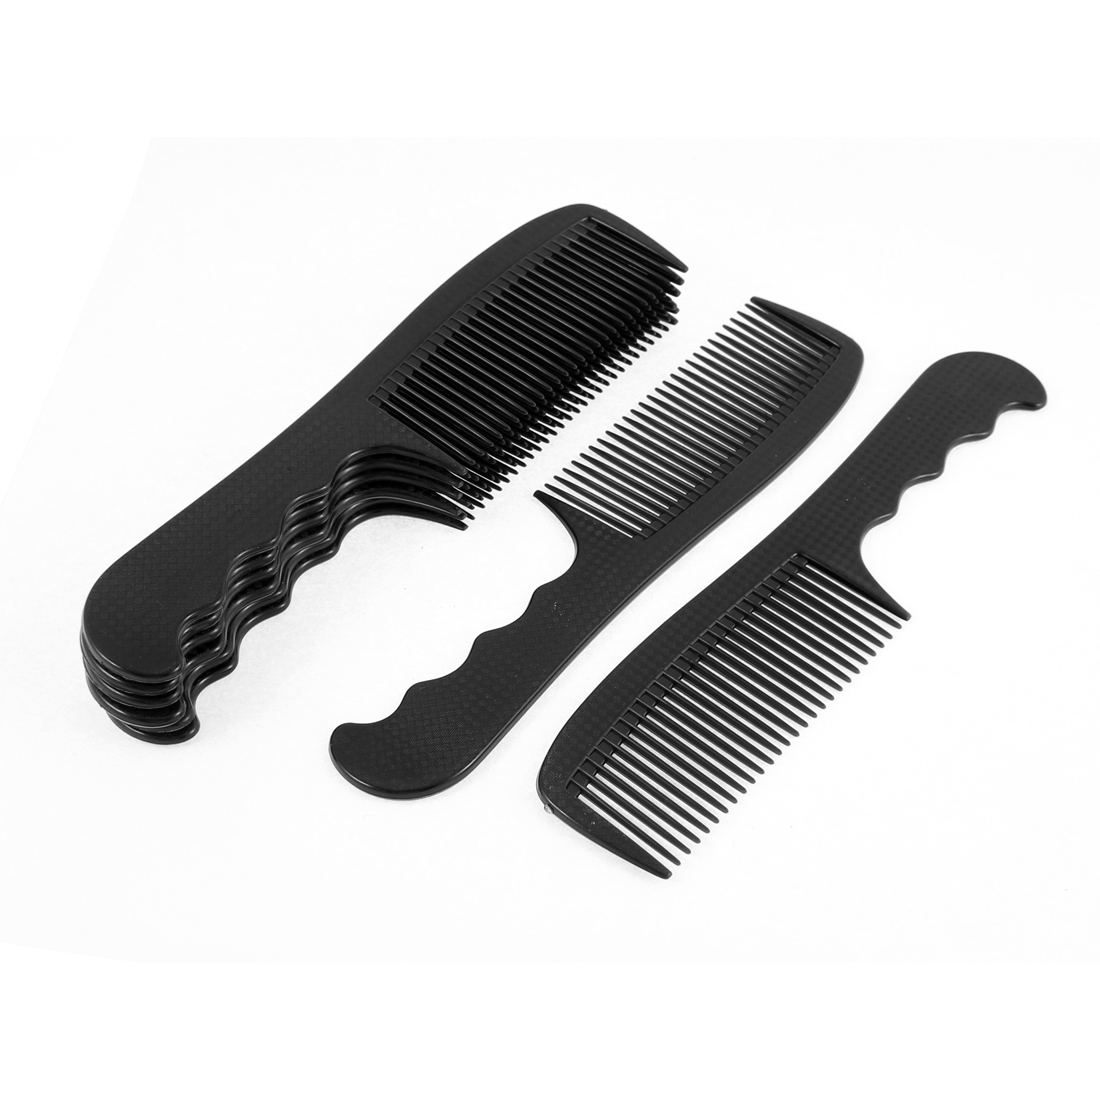 Plastic Anti Static Beauty Tool Hairdressing Hair Combs Black 8Pcs